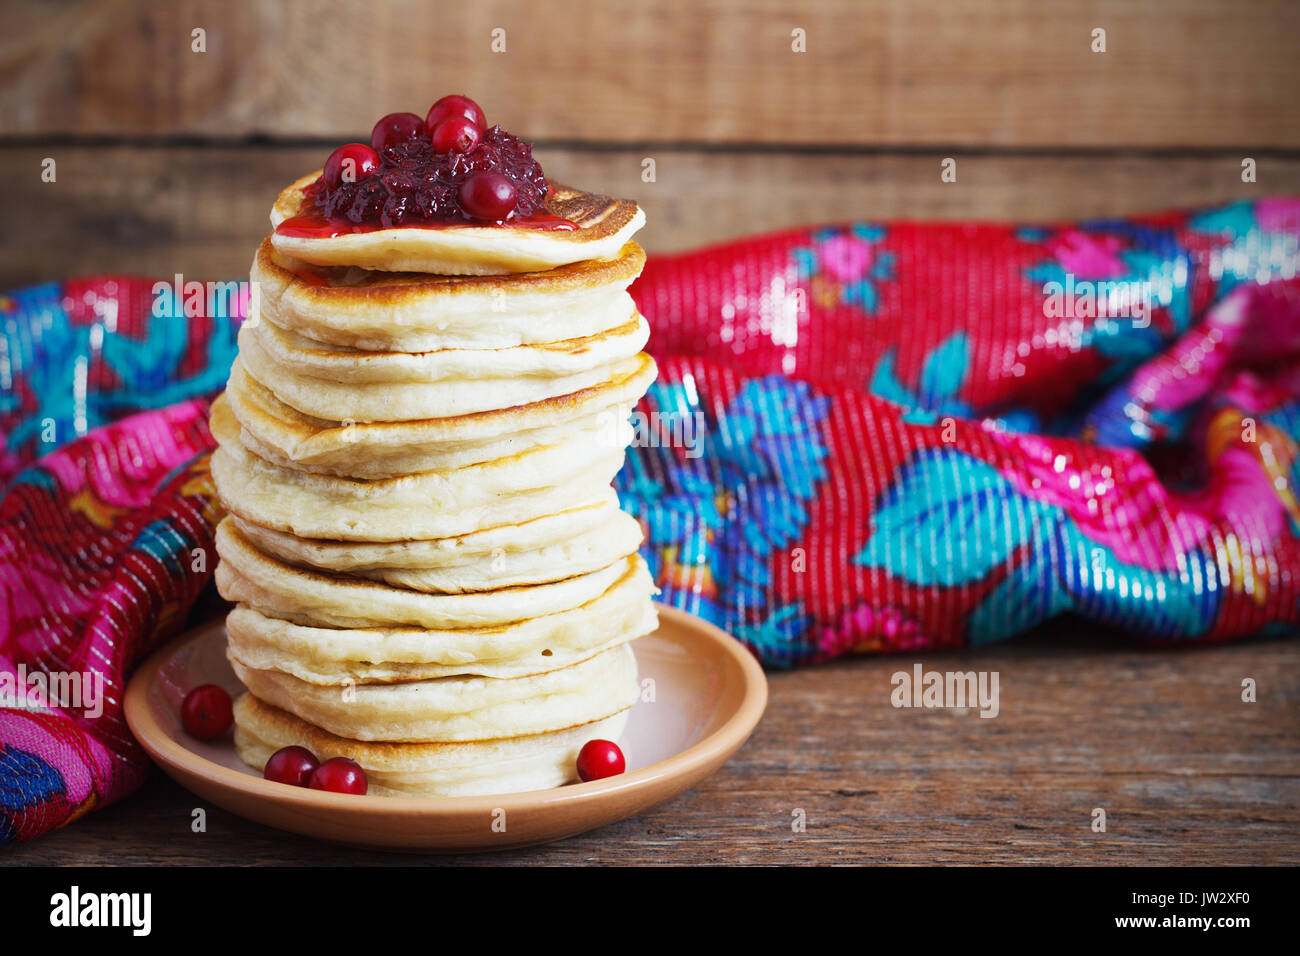 Staple of yeast pancakes from cranberry, traditional for Russian pancake week rustic - Stock Image